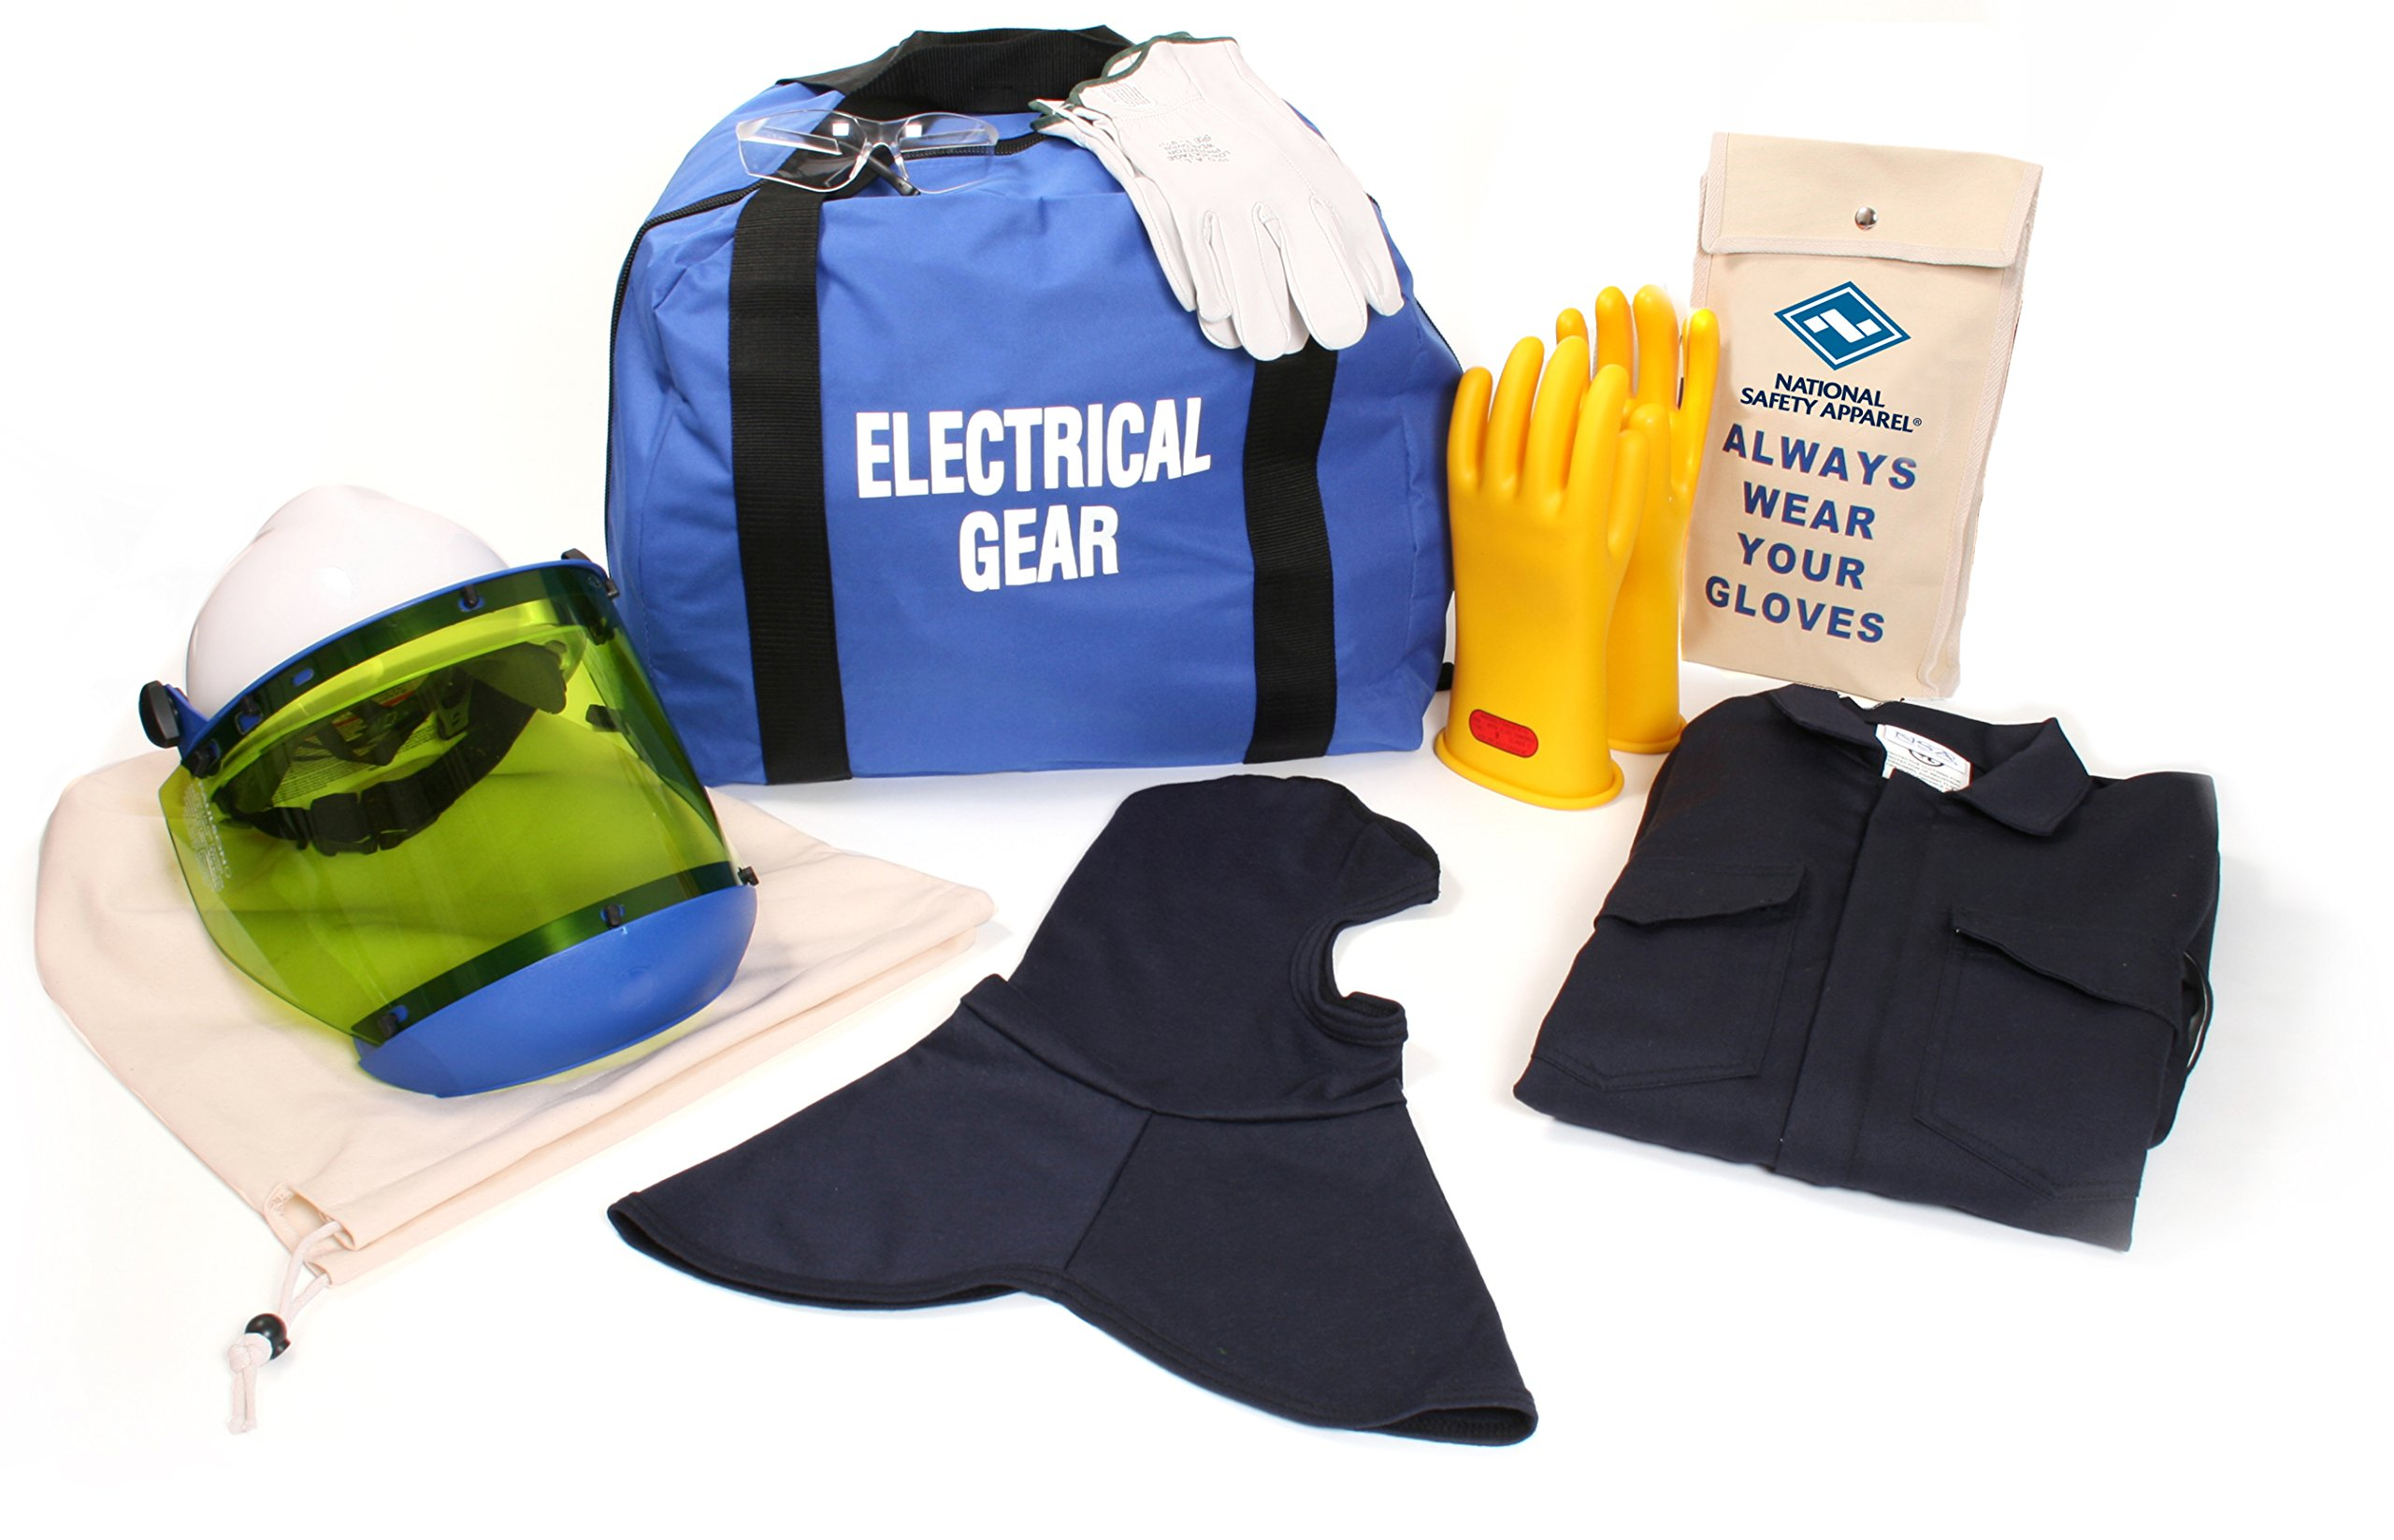 National Safety Apparel KIT2CV11BMD08 ArcGuard UltraSoft Arc Flash Kit with Coverall and Balaclava, 12 Calorie, Medium, Size 8, Navy